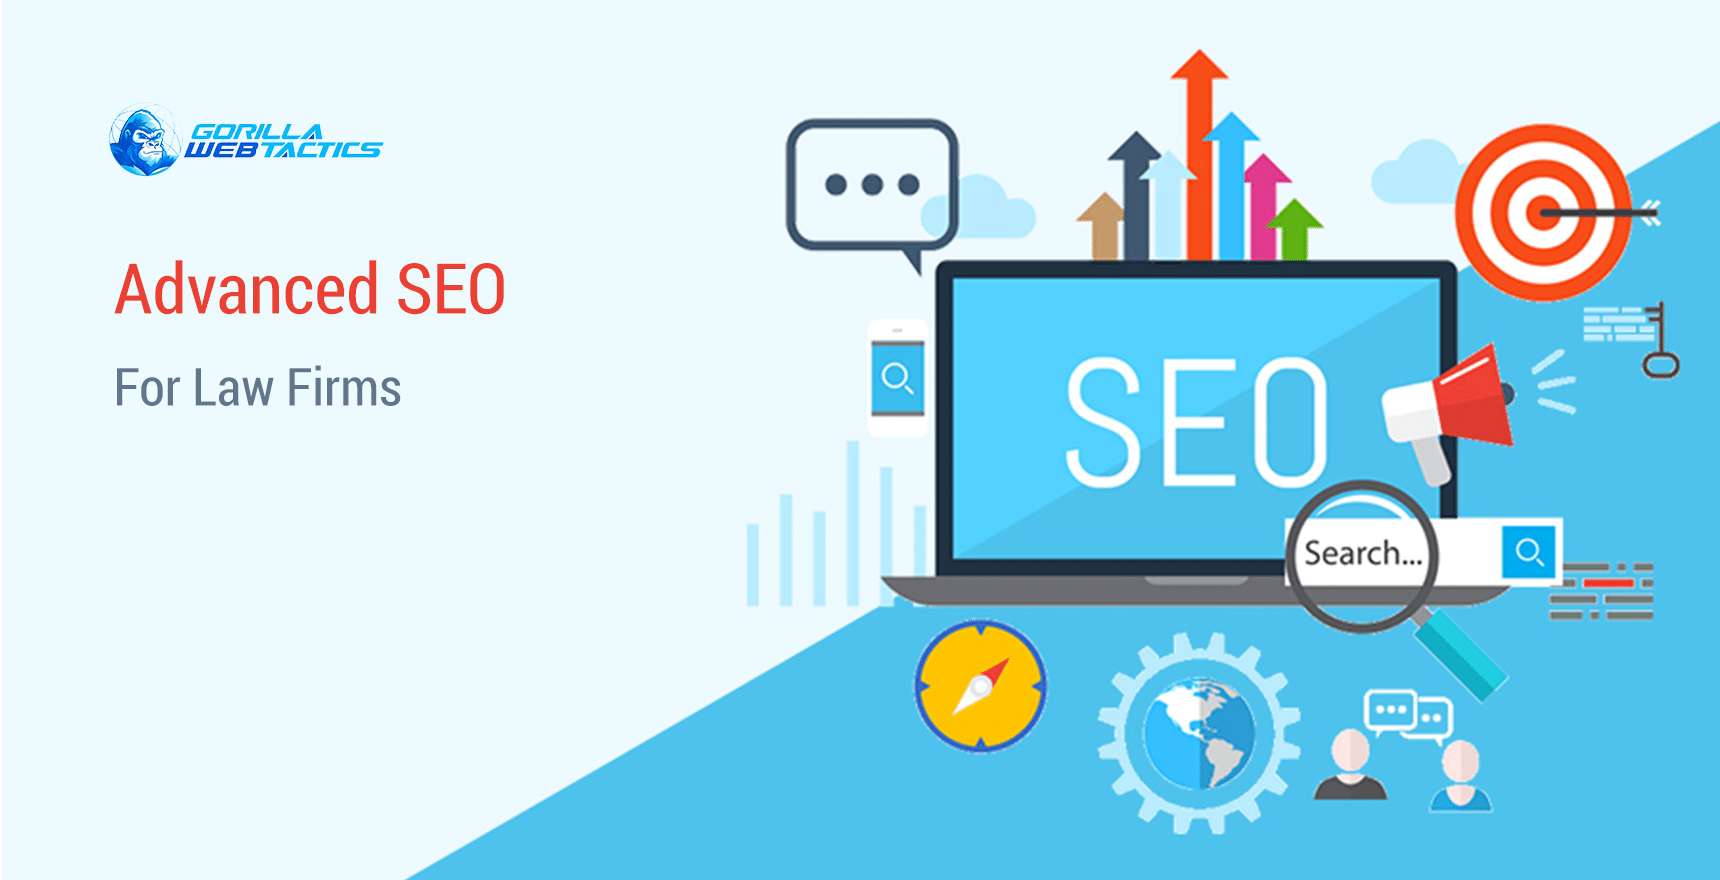 Advanced SEO Strategies for Law Firms